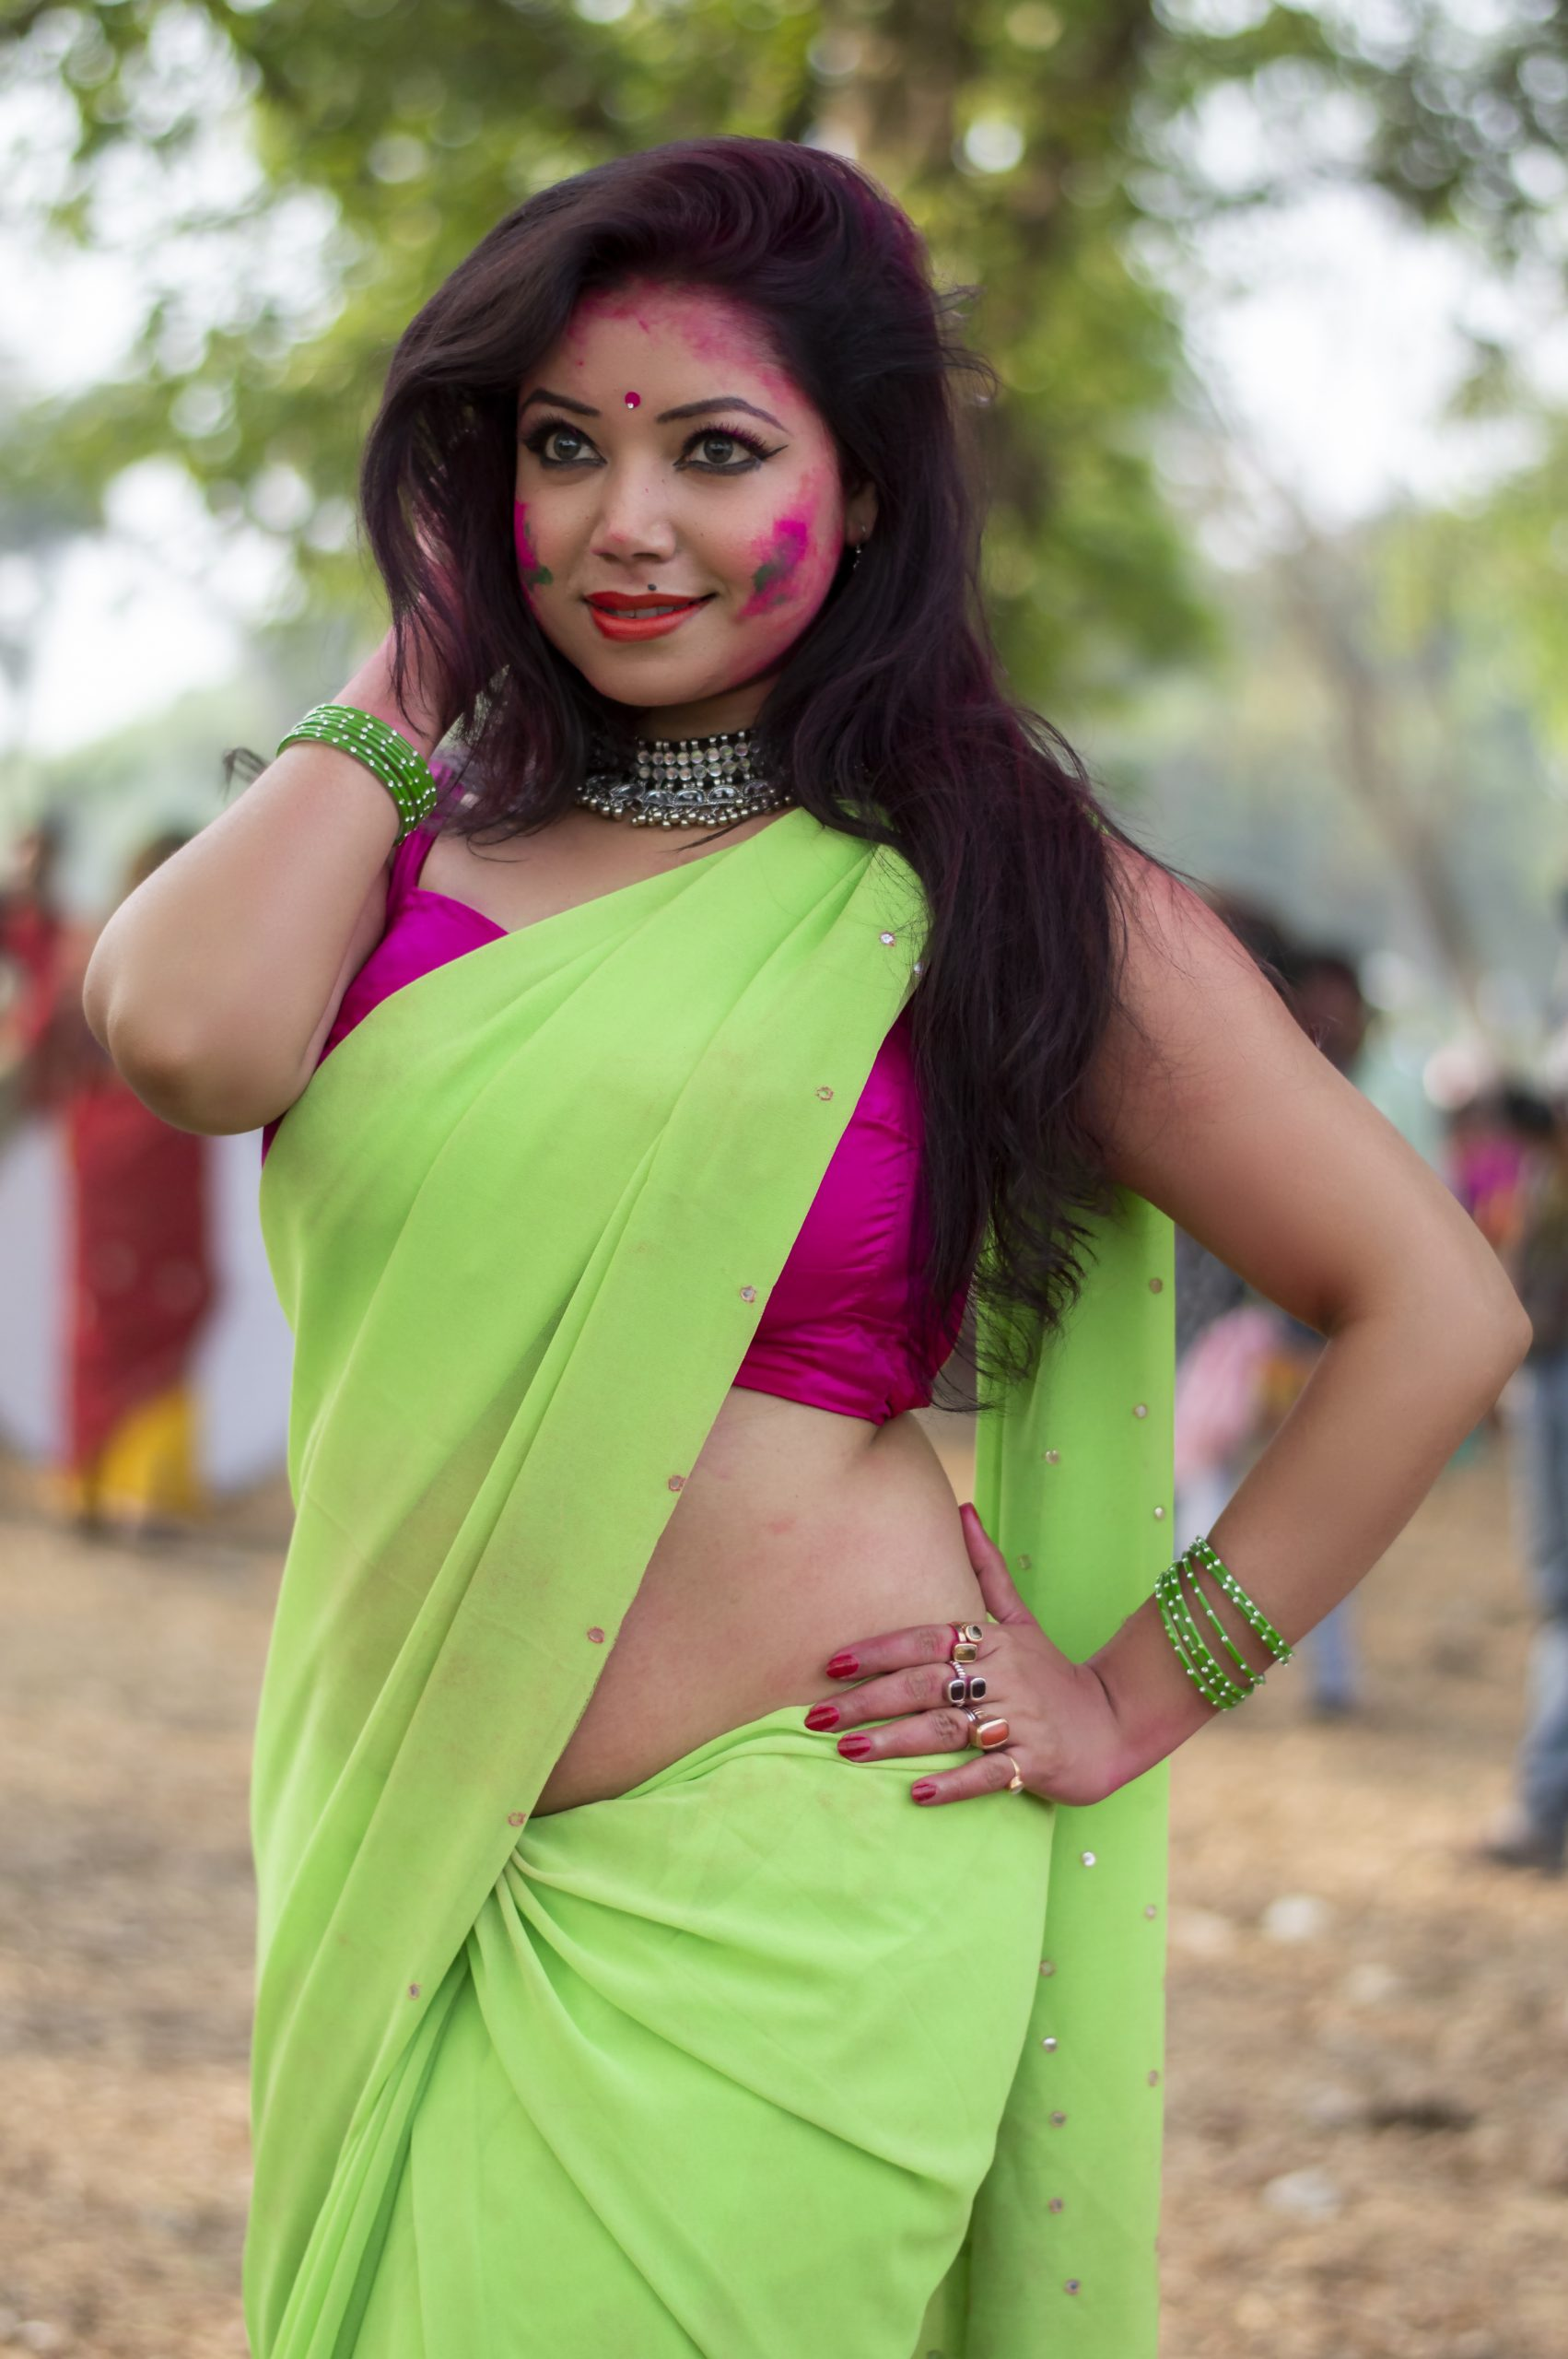 An Indian woman during Holi festival